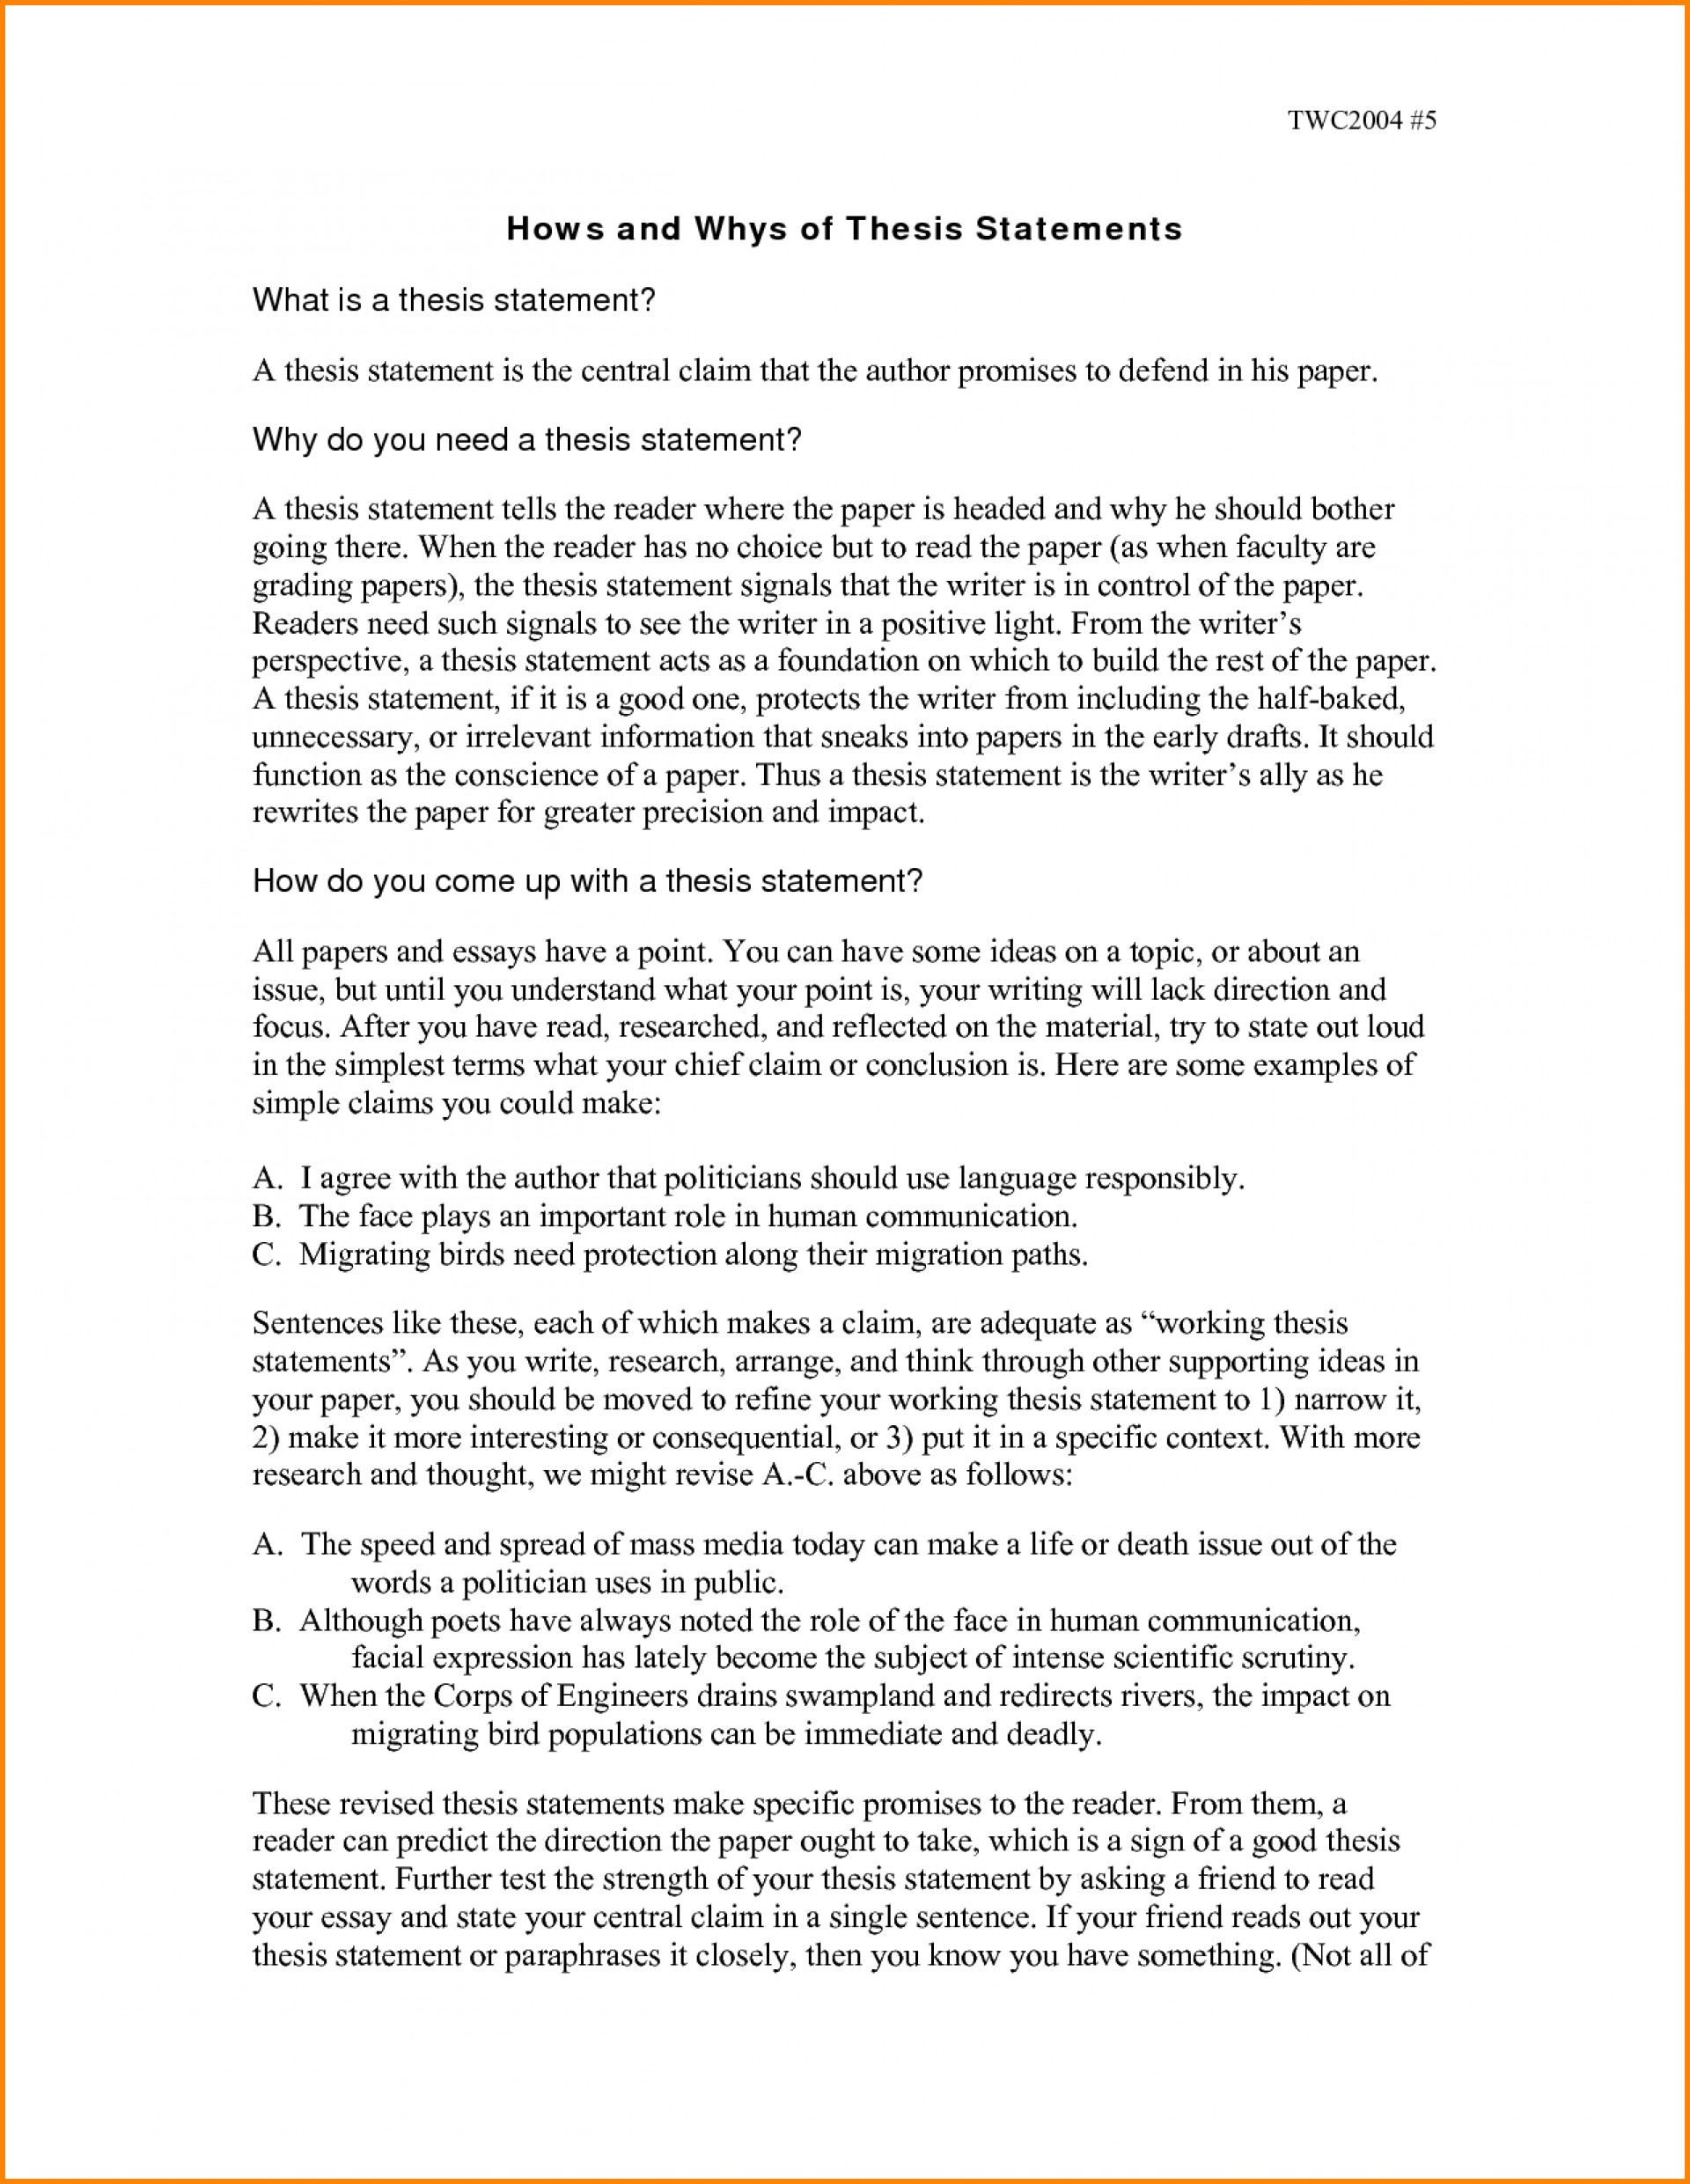 003 Argumentative Research Paper Thesis Statement Examples For Essays Stunning 1920